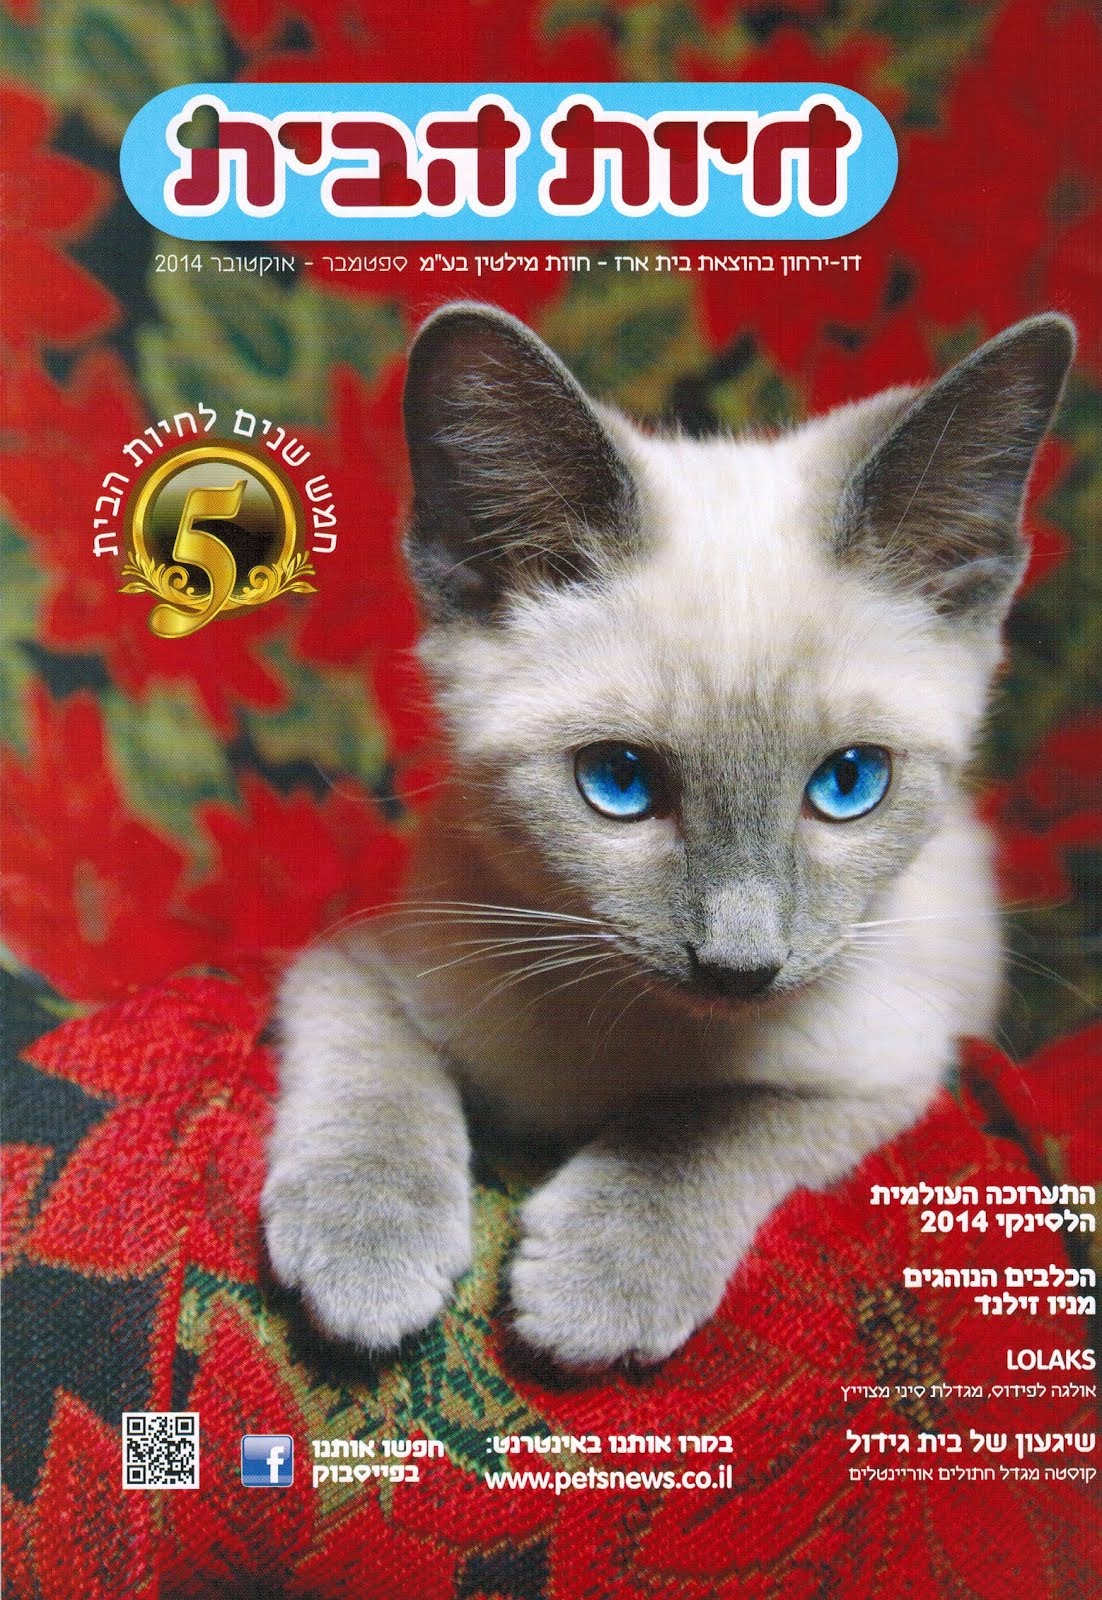 PetsNews, September/October (2014)